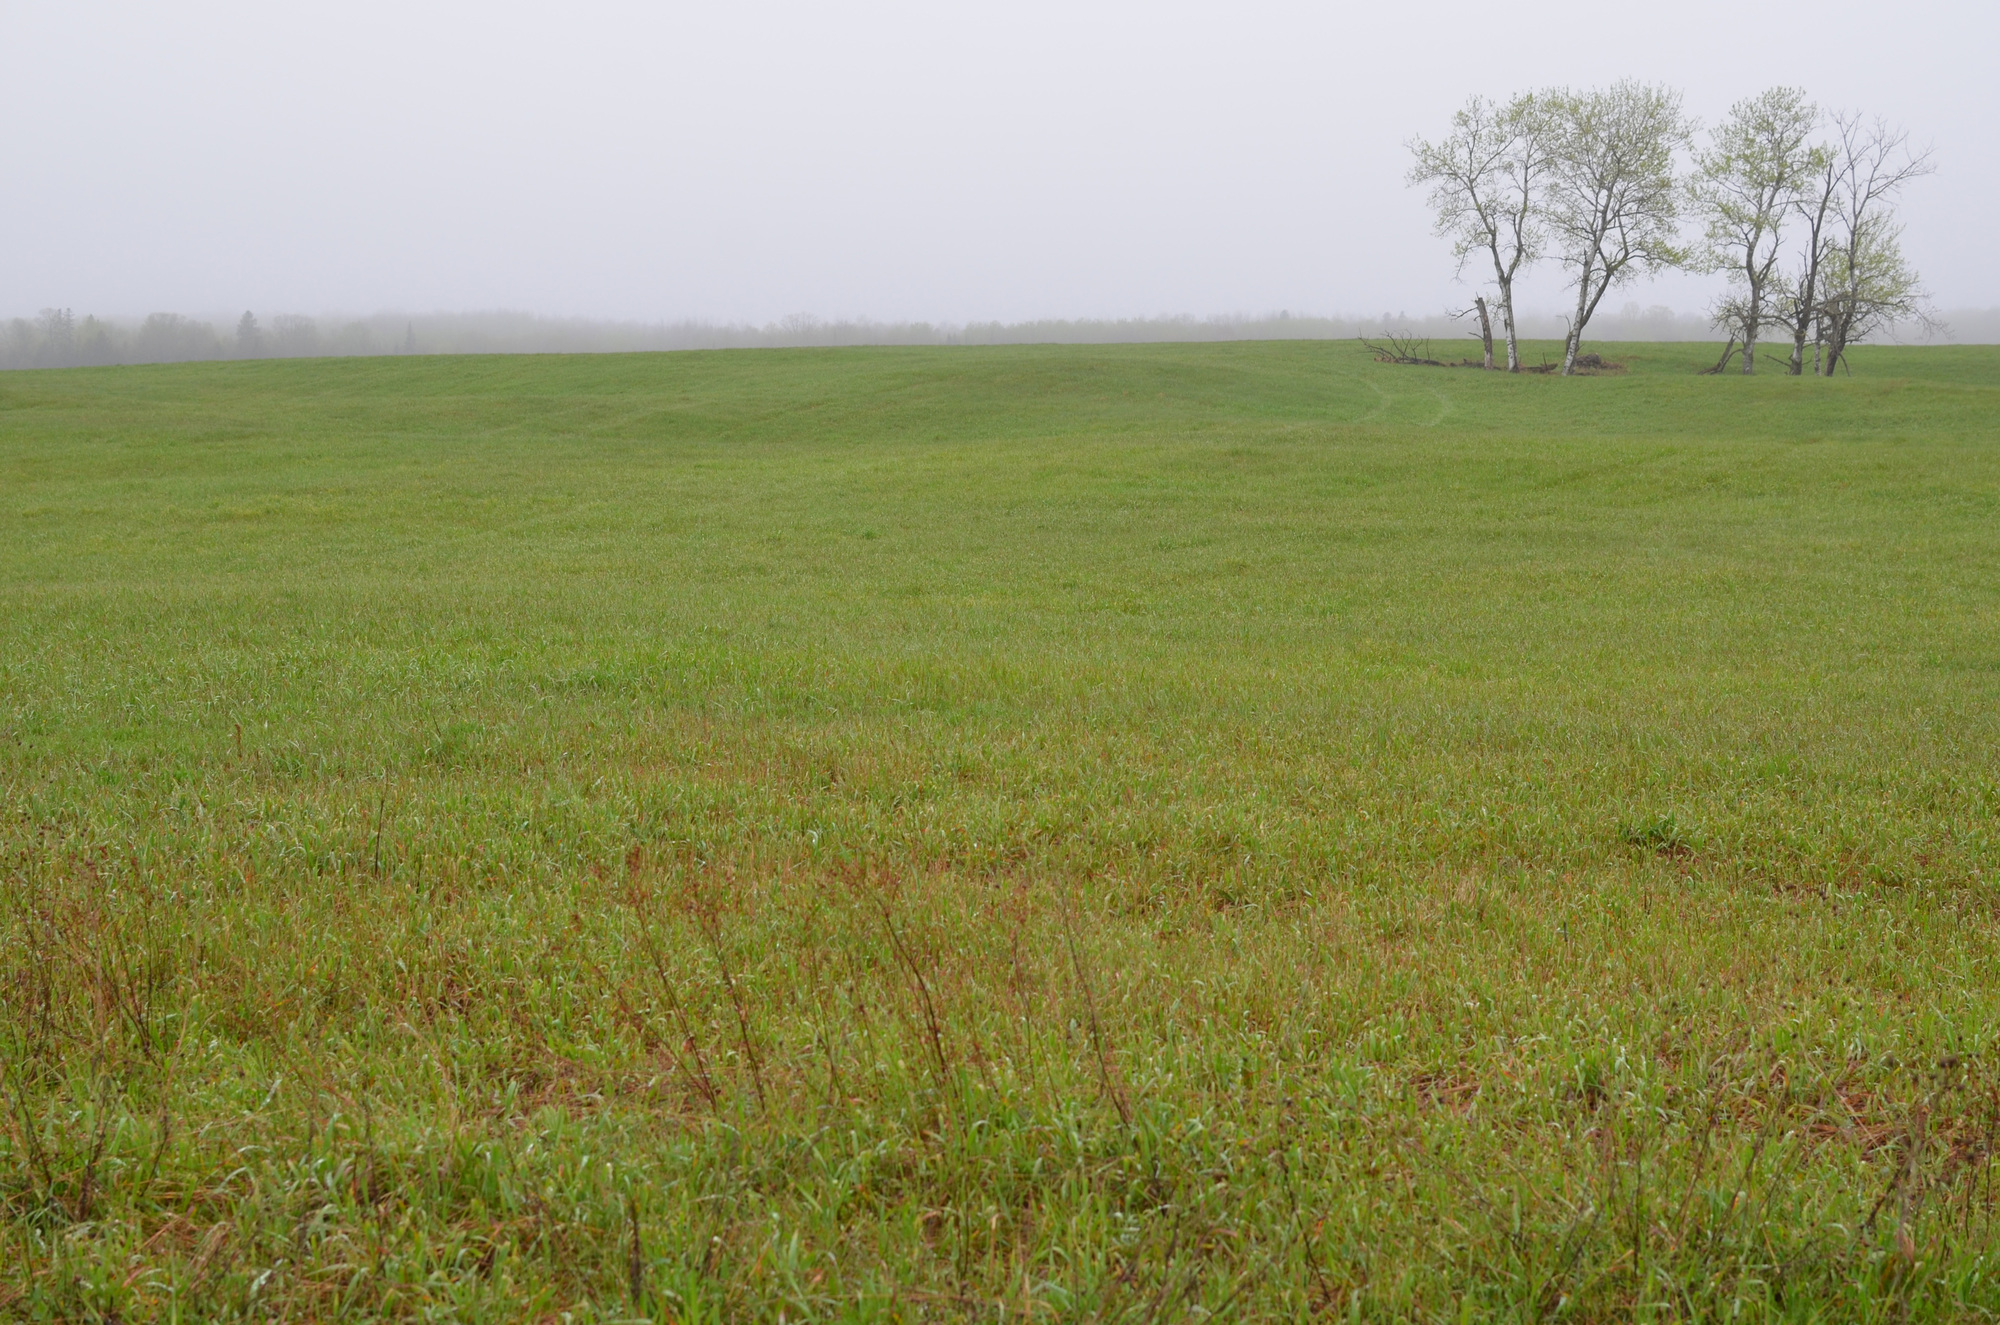 A sweeping vista along a Michigan grassland.